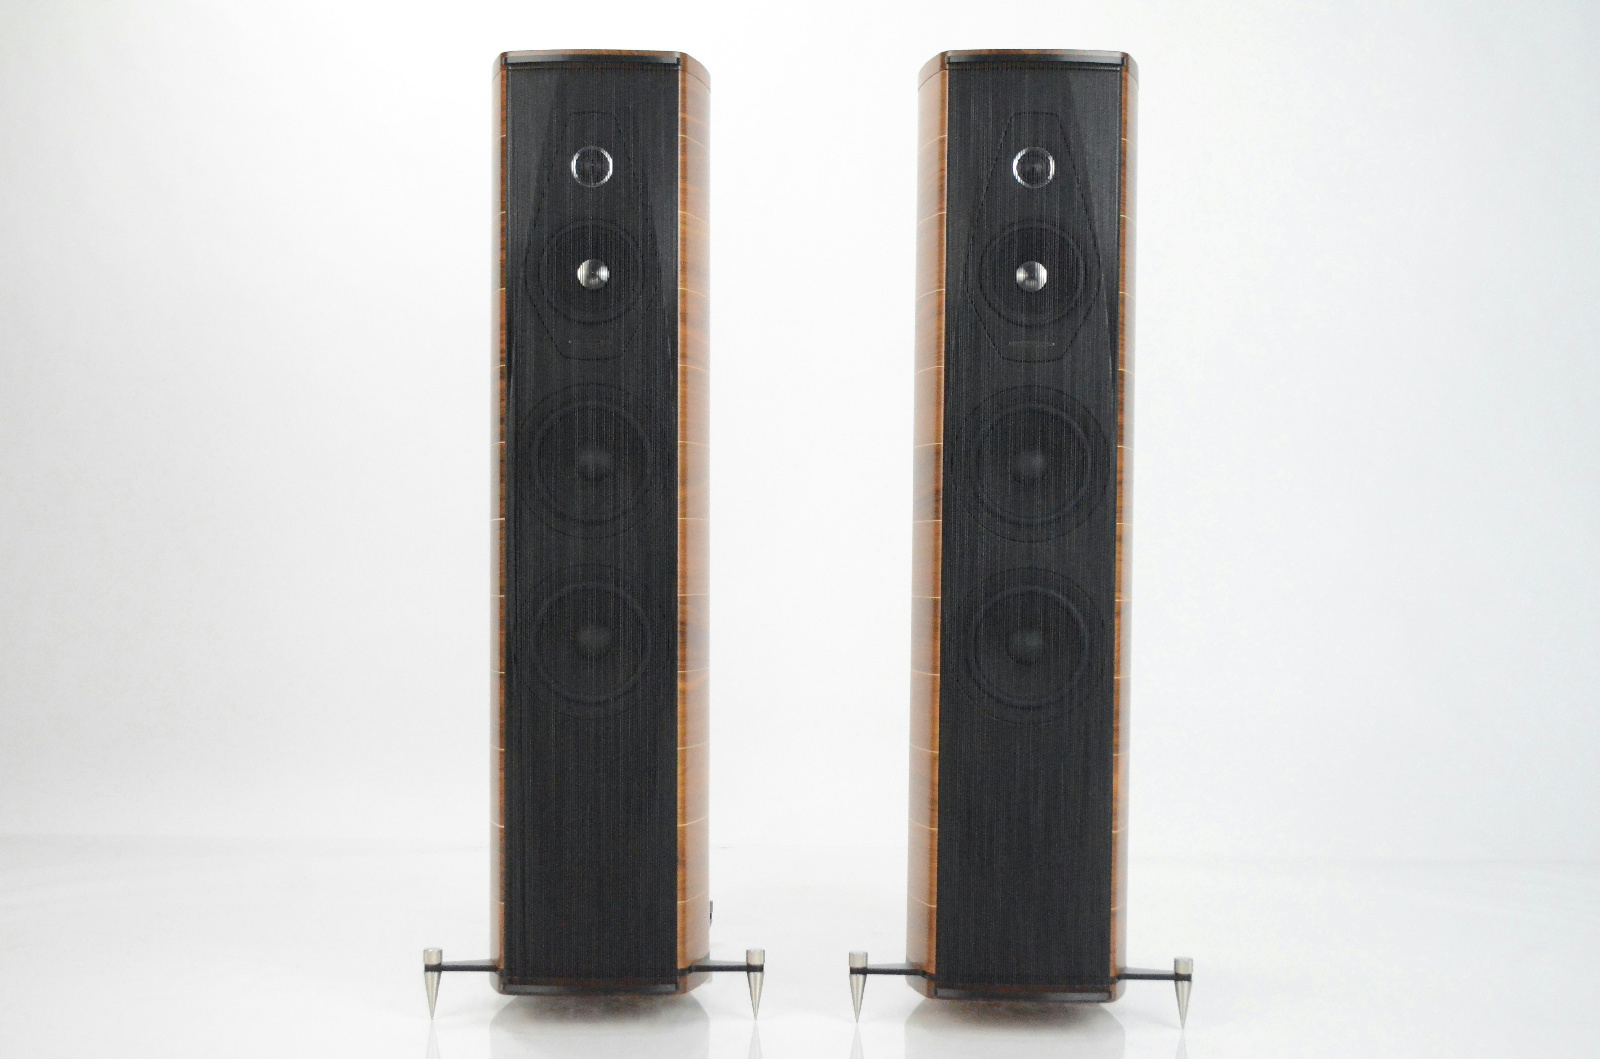 Sonus Faber Olympica III Stereo 3-Way Speakers Floor Tower Home Theater #33385